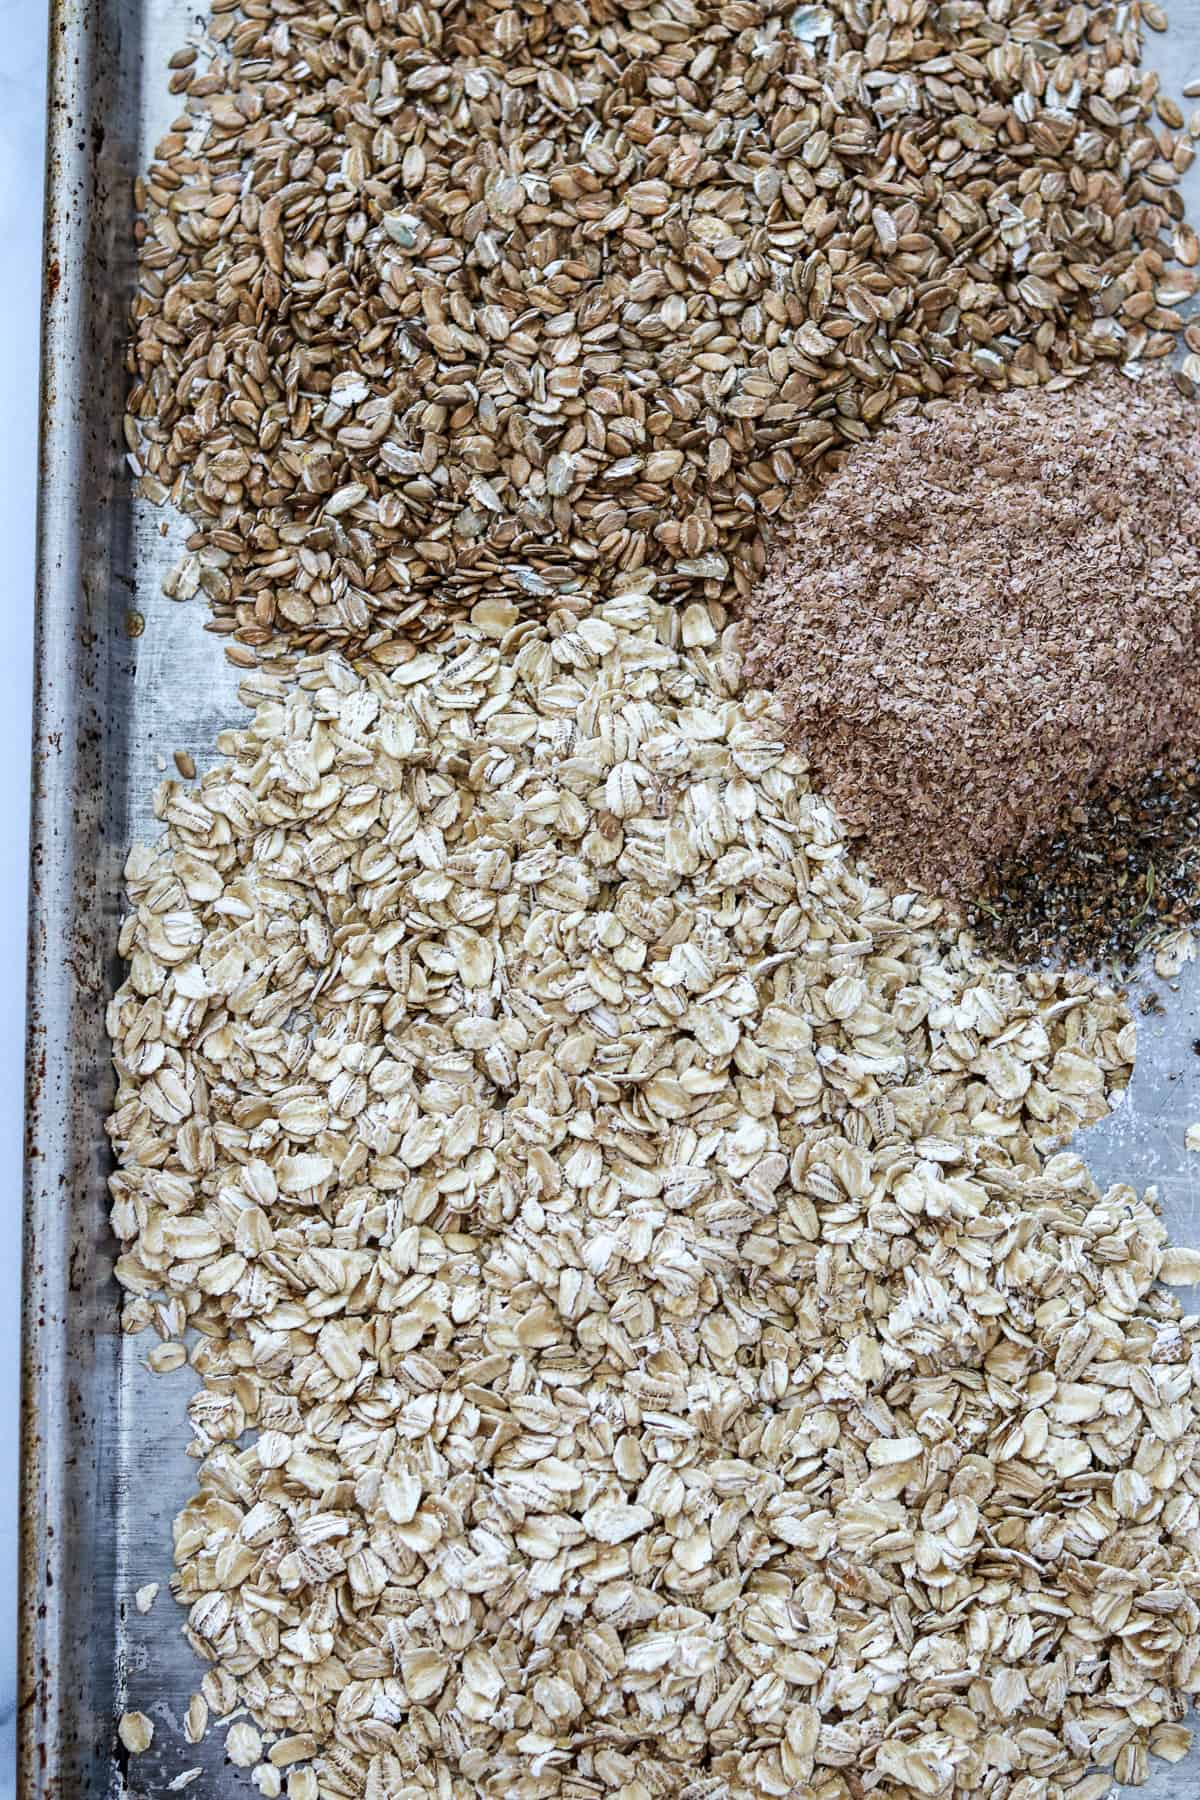 Oats, rye flakes and wheat bran on a sheet pan.